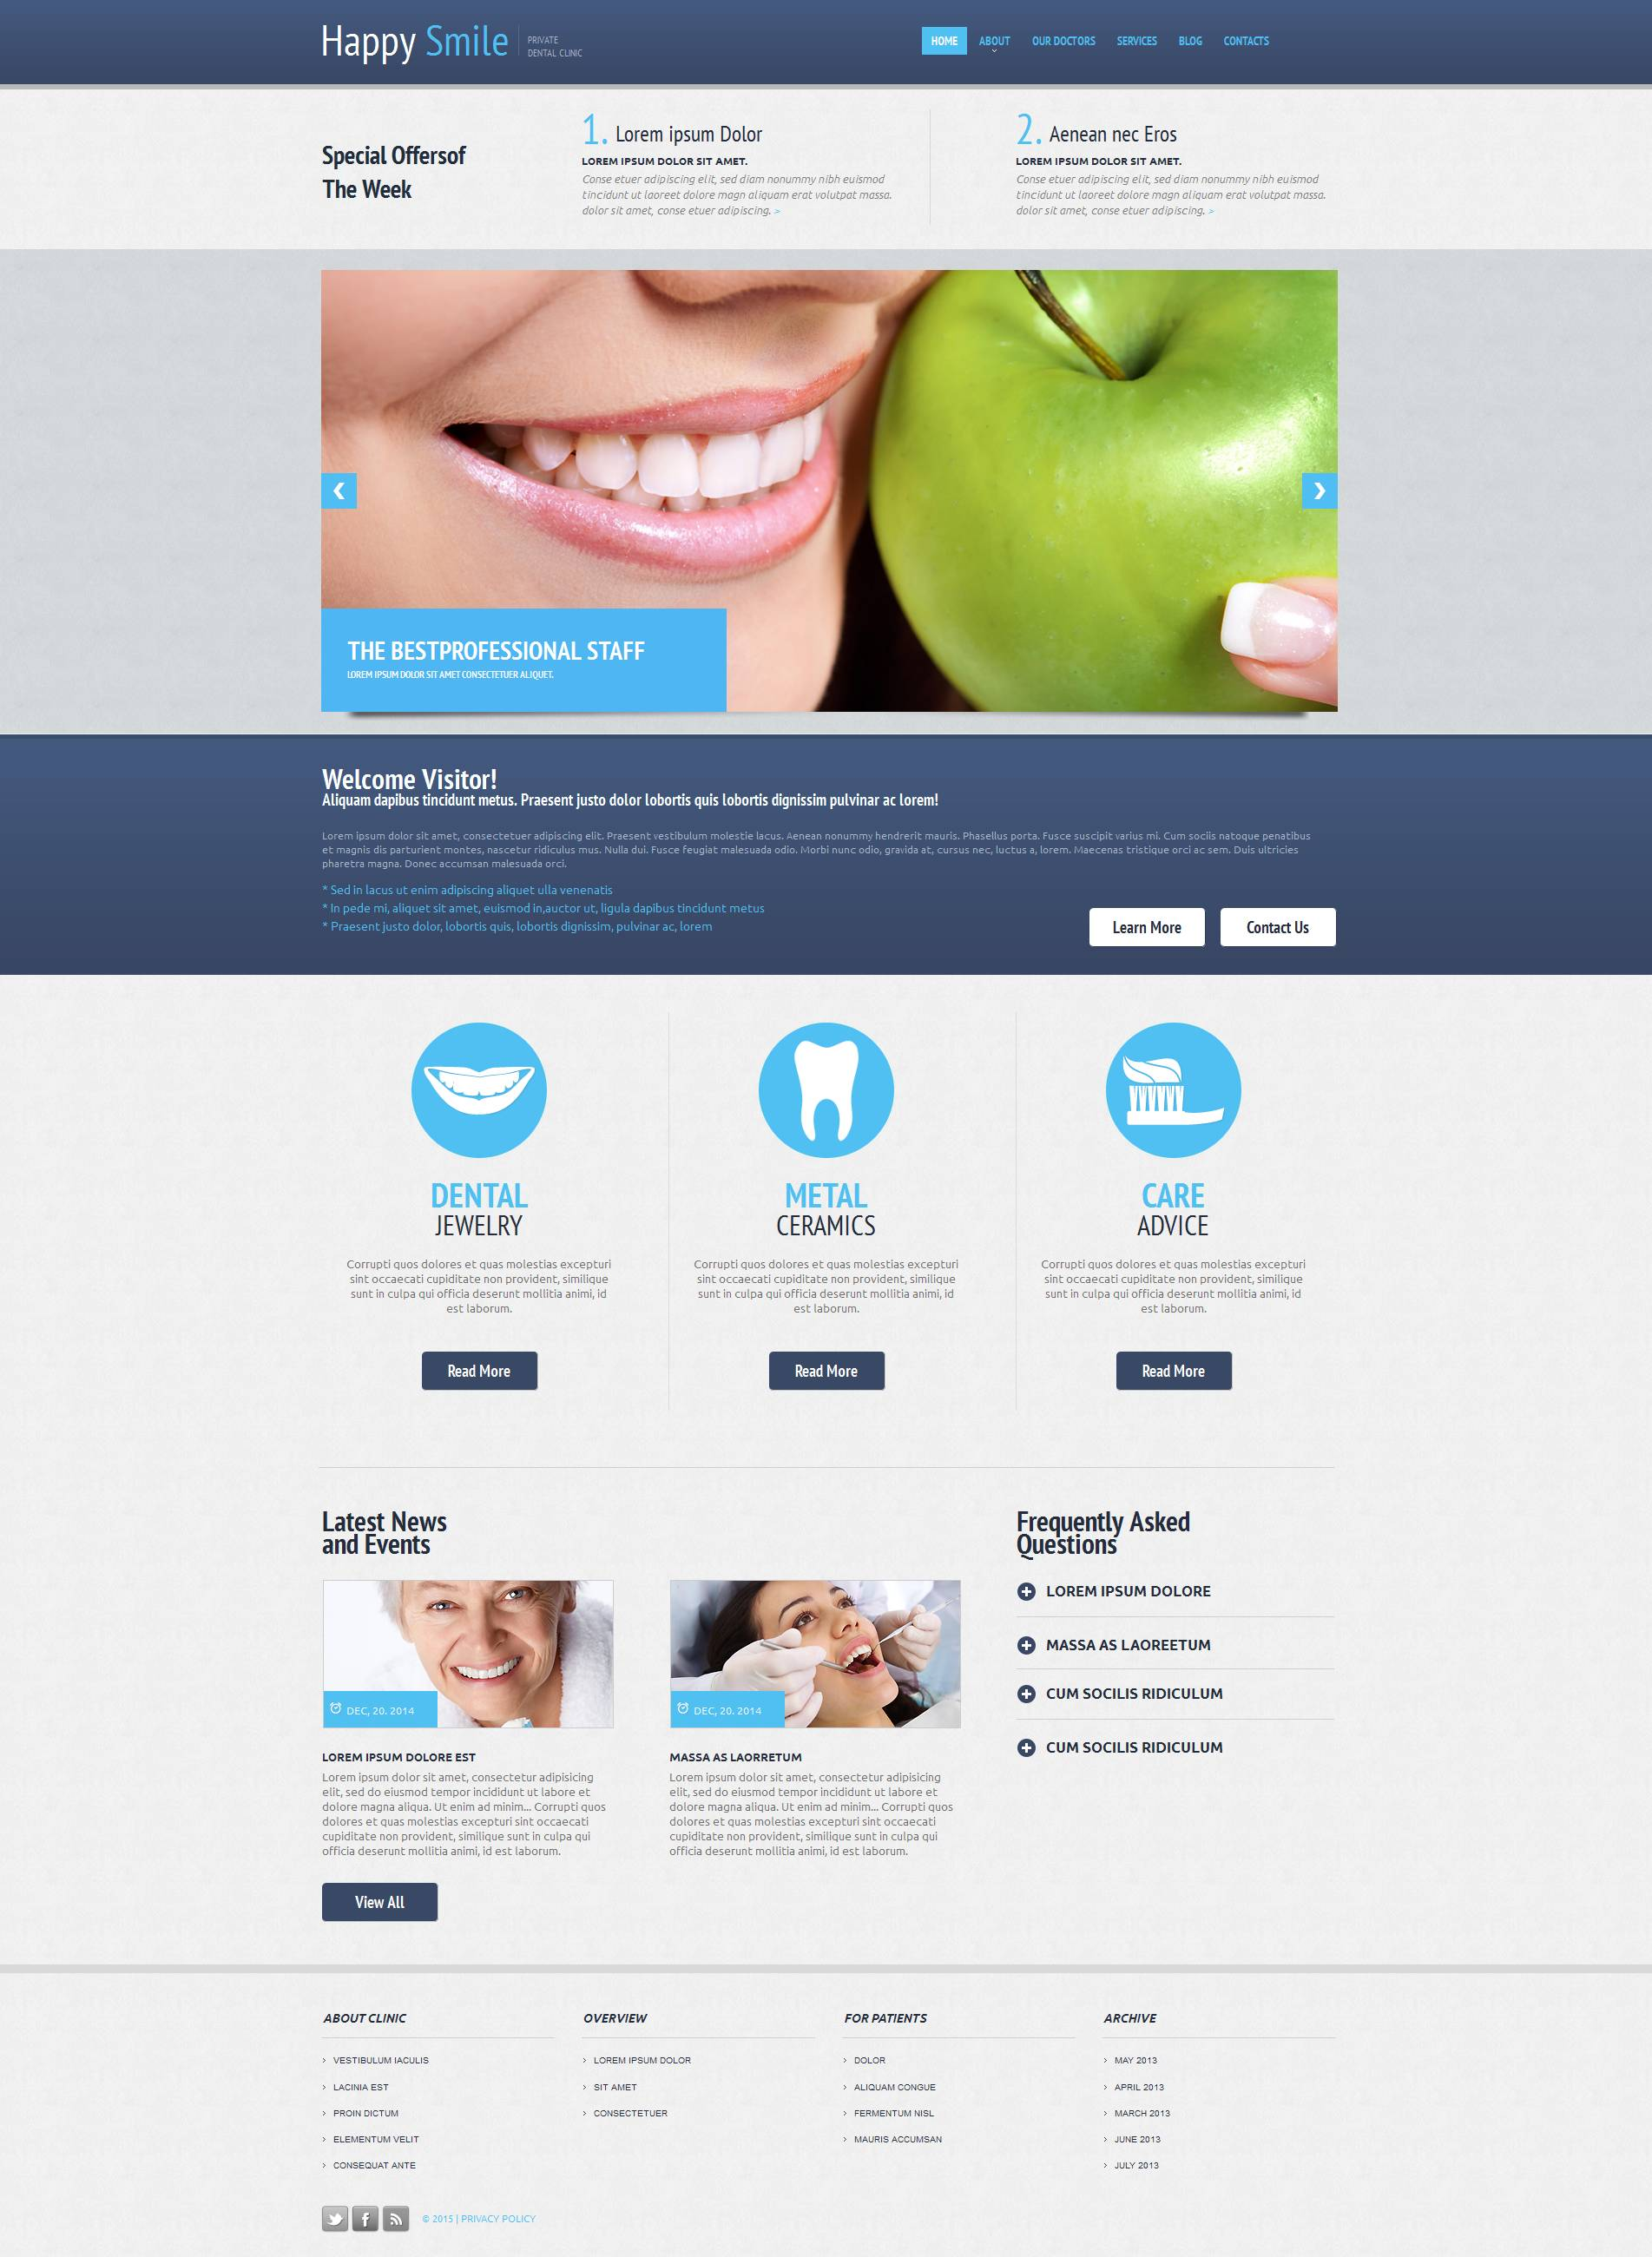 The Heppy Smile Moto CMS HTML Design 53608, one of the best Moto CMS HTML templates of its kind (medical, most popular), also known as heppy smile Moto CMS HTML template, dentist Moto CMS HTML template, teeth Moto CMS HTML template, policlinic Moto CMS HTML template, bright smile Moto CMS HTML template, doctor Moto CMS HTML template, services Moto CMS HTML template, dentistry Moto CMS HTML template, cosmetic care Moto CMS HTML template, health Moto CMS HTML template, prices Moto CMS HTML template, bleaching Moto CMS HTML template, prosthesis Moto CMS HTML template, crown of  tooth Moto CMS HTML template, implant Moto CMS HTML template, clients Moto CMS HTML template, testimonials Moto CMS HTML template, pain Moto CMS HTML template, painless Moto CMS HTML template, treatment solution Moto CMS HTML template, technology Moto CMS HTML template, dental Moto CMS HTML template, services Moto CMS HTML template, stopping Moto CMS HTML template, caries Moto CMS HTML template, parodontosis and related with heppy smile, dentist, teeth, policlinic, bright smile, doctor, services, dentistry, cosmetic care, health, prices, bleaching, prosthesis, crown of  tooth, implant, clients, testimonials, pain, painless, treatment solution, technology, dental, services, stopping, caries, parodontosis, etc.